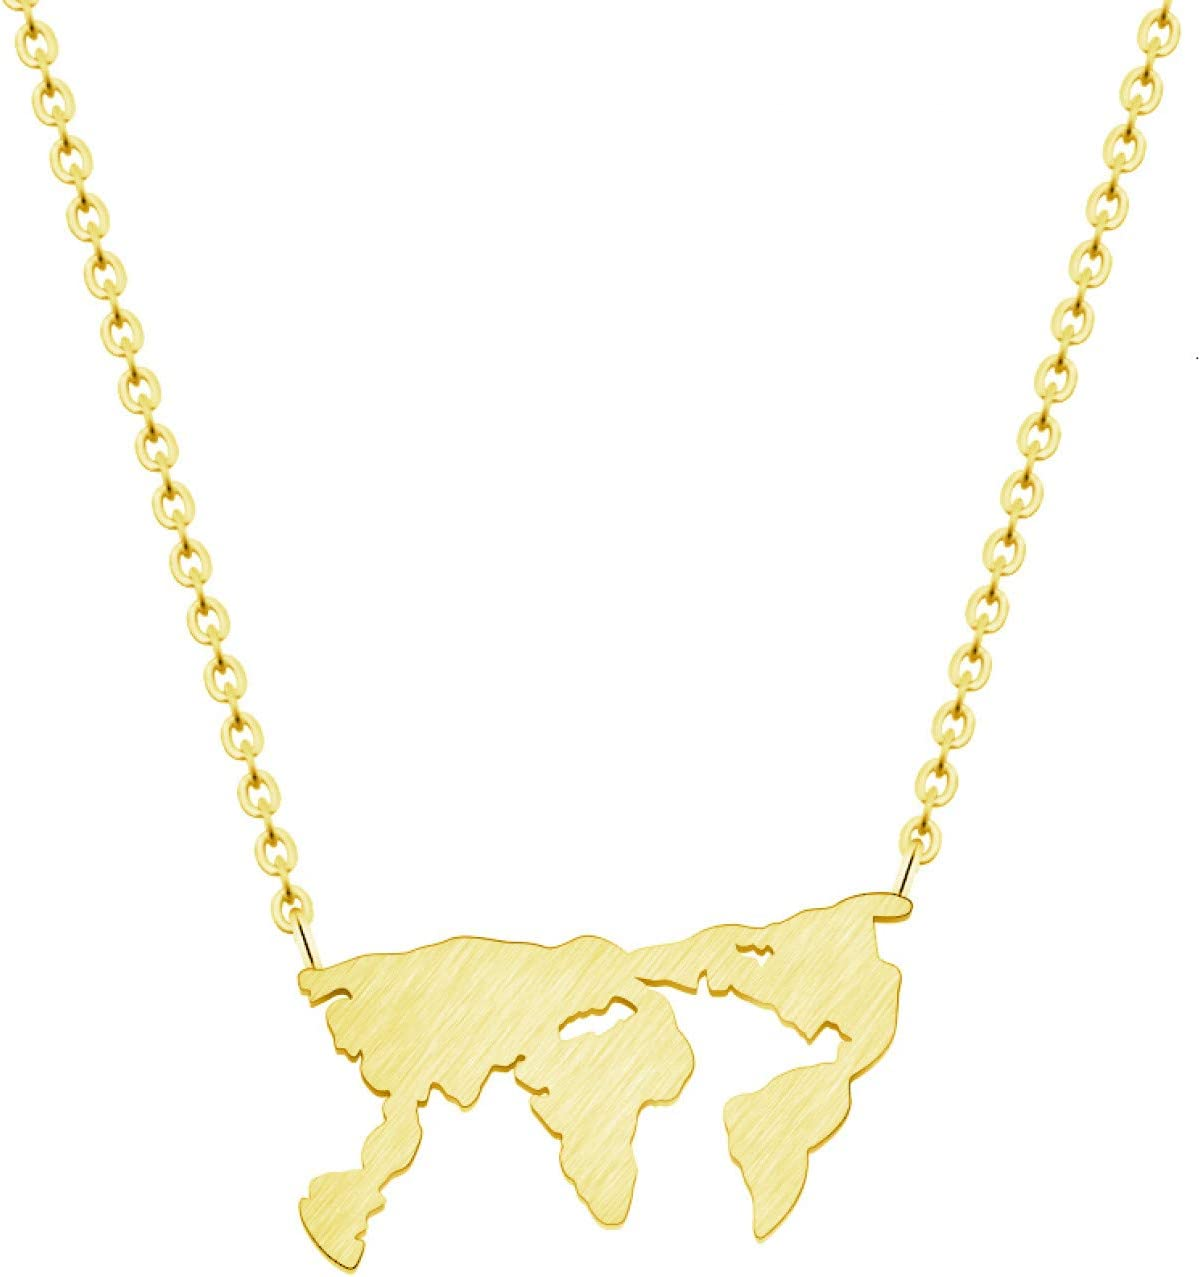 N/A Necklace Pendant World Map Pendant Necklace Earth Day Gift Fashion Jewelry Stainless Steel Gold Chain Earth Map Necklace Gifts Collar Woman Christmas Birthday Gift